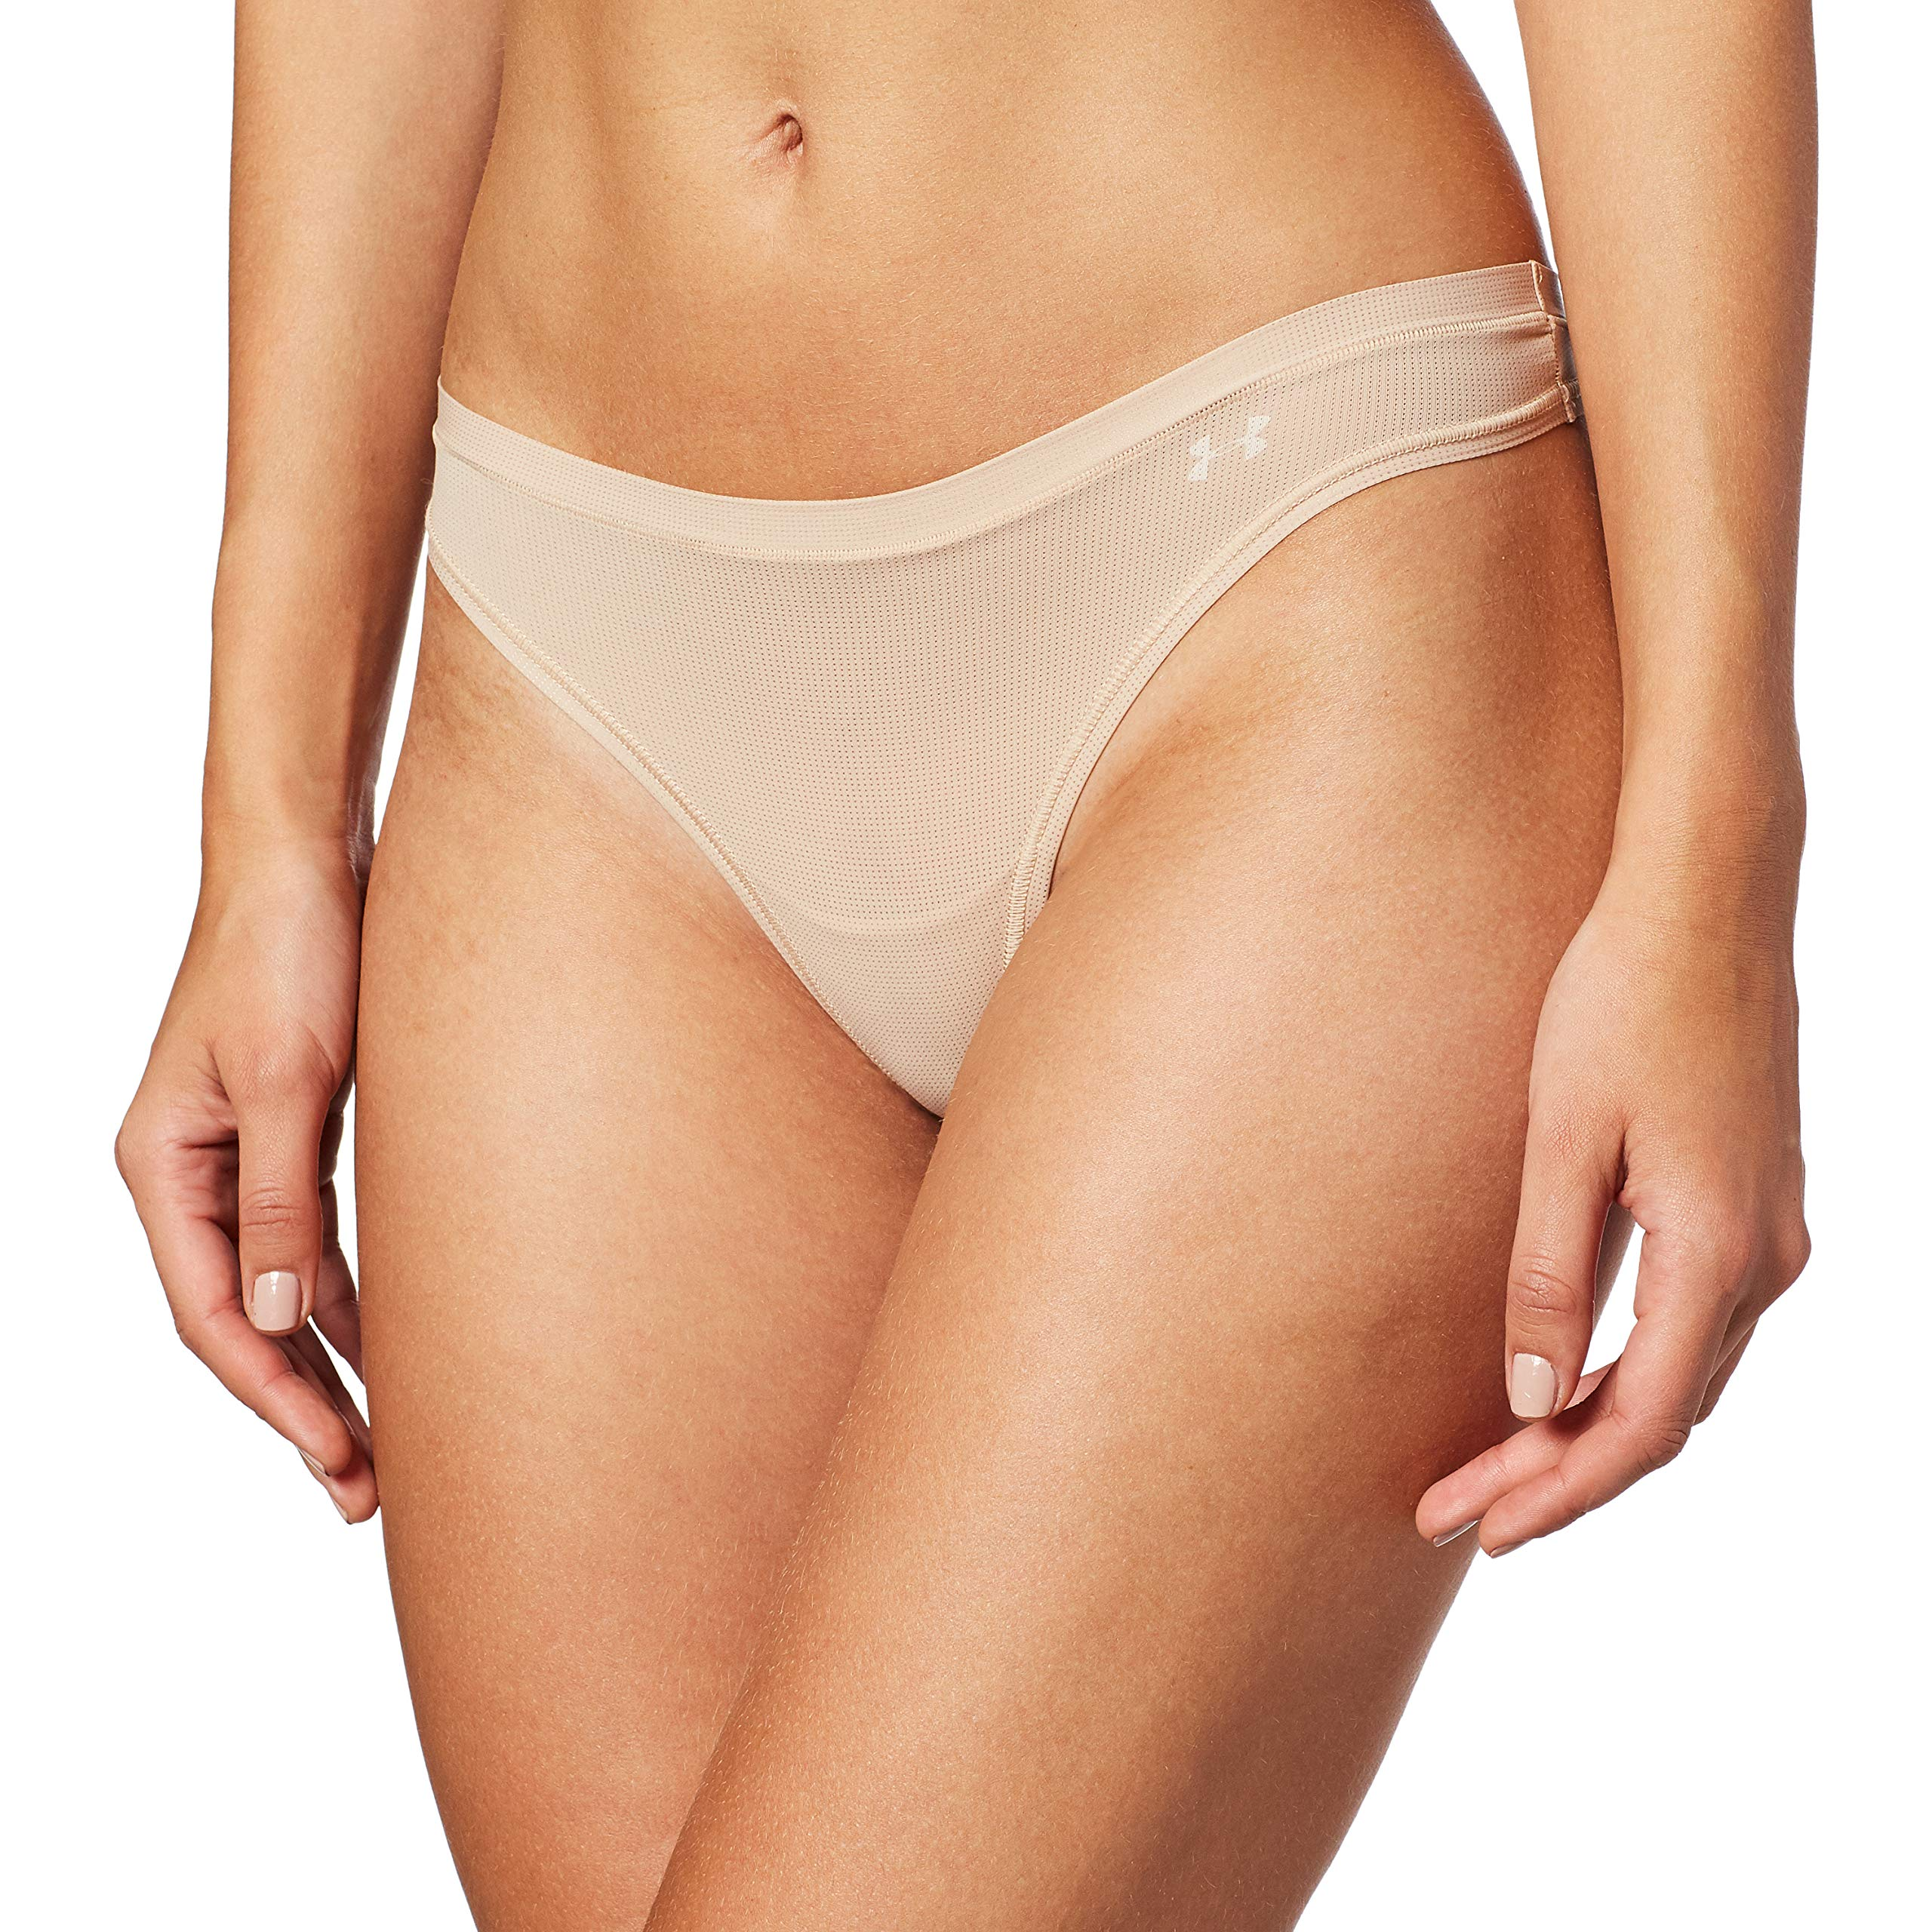 Under Armour Women's Power in Pink Pure Stretch Thong Underwear